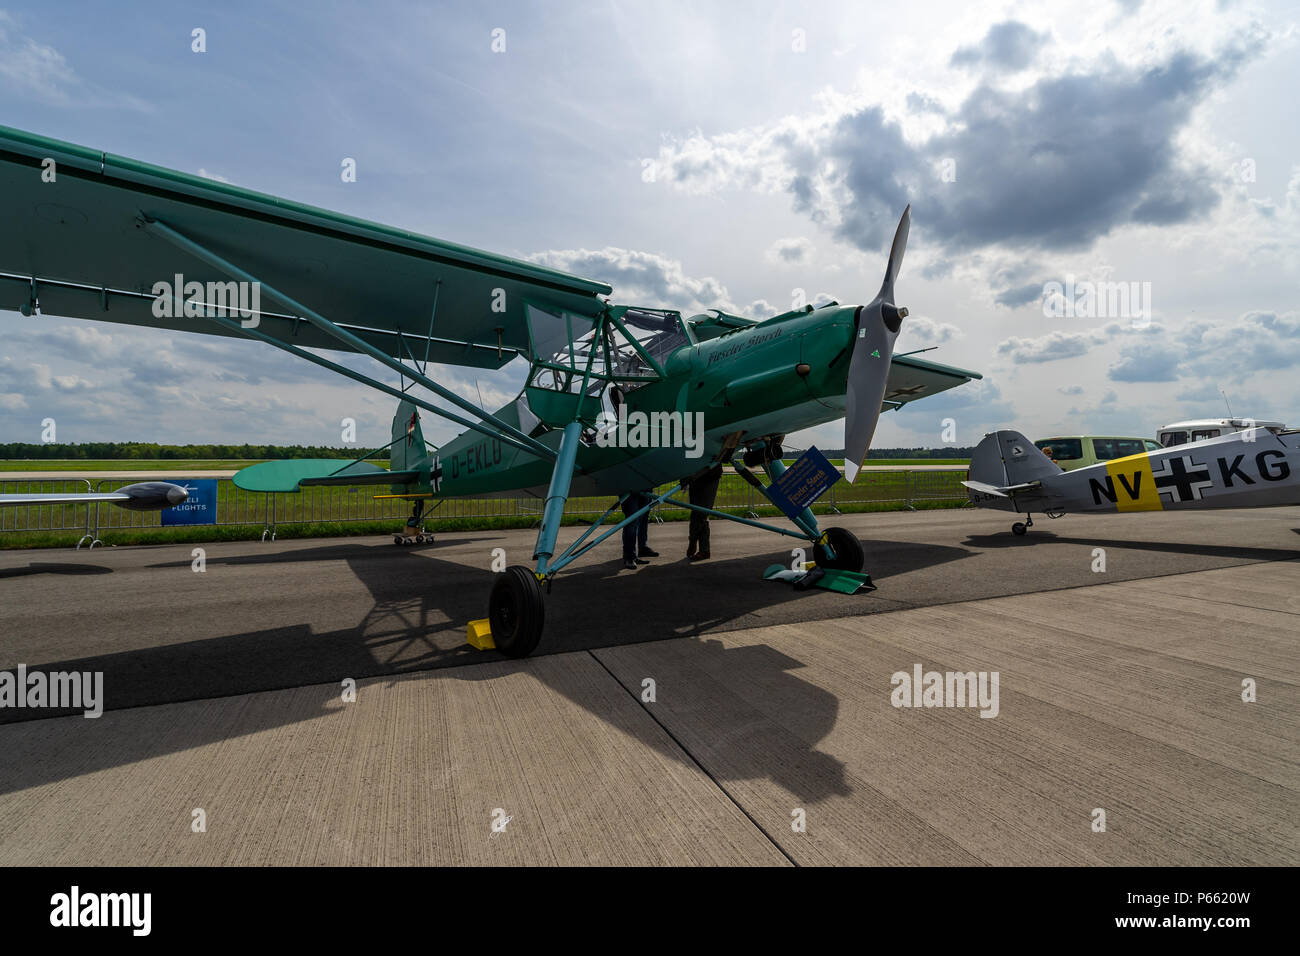 German Small Aircraft Stock Photos & German Small Aircraft